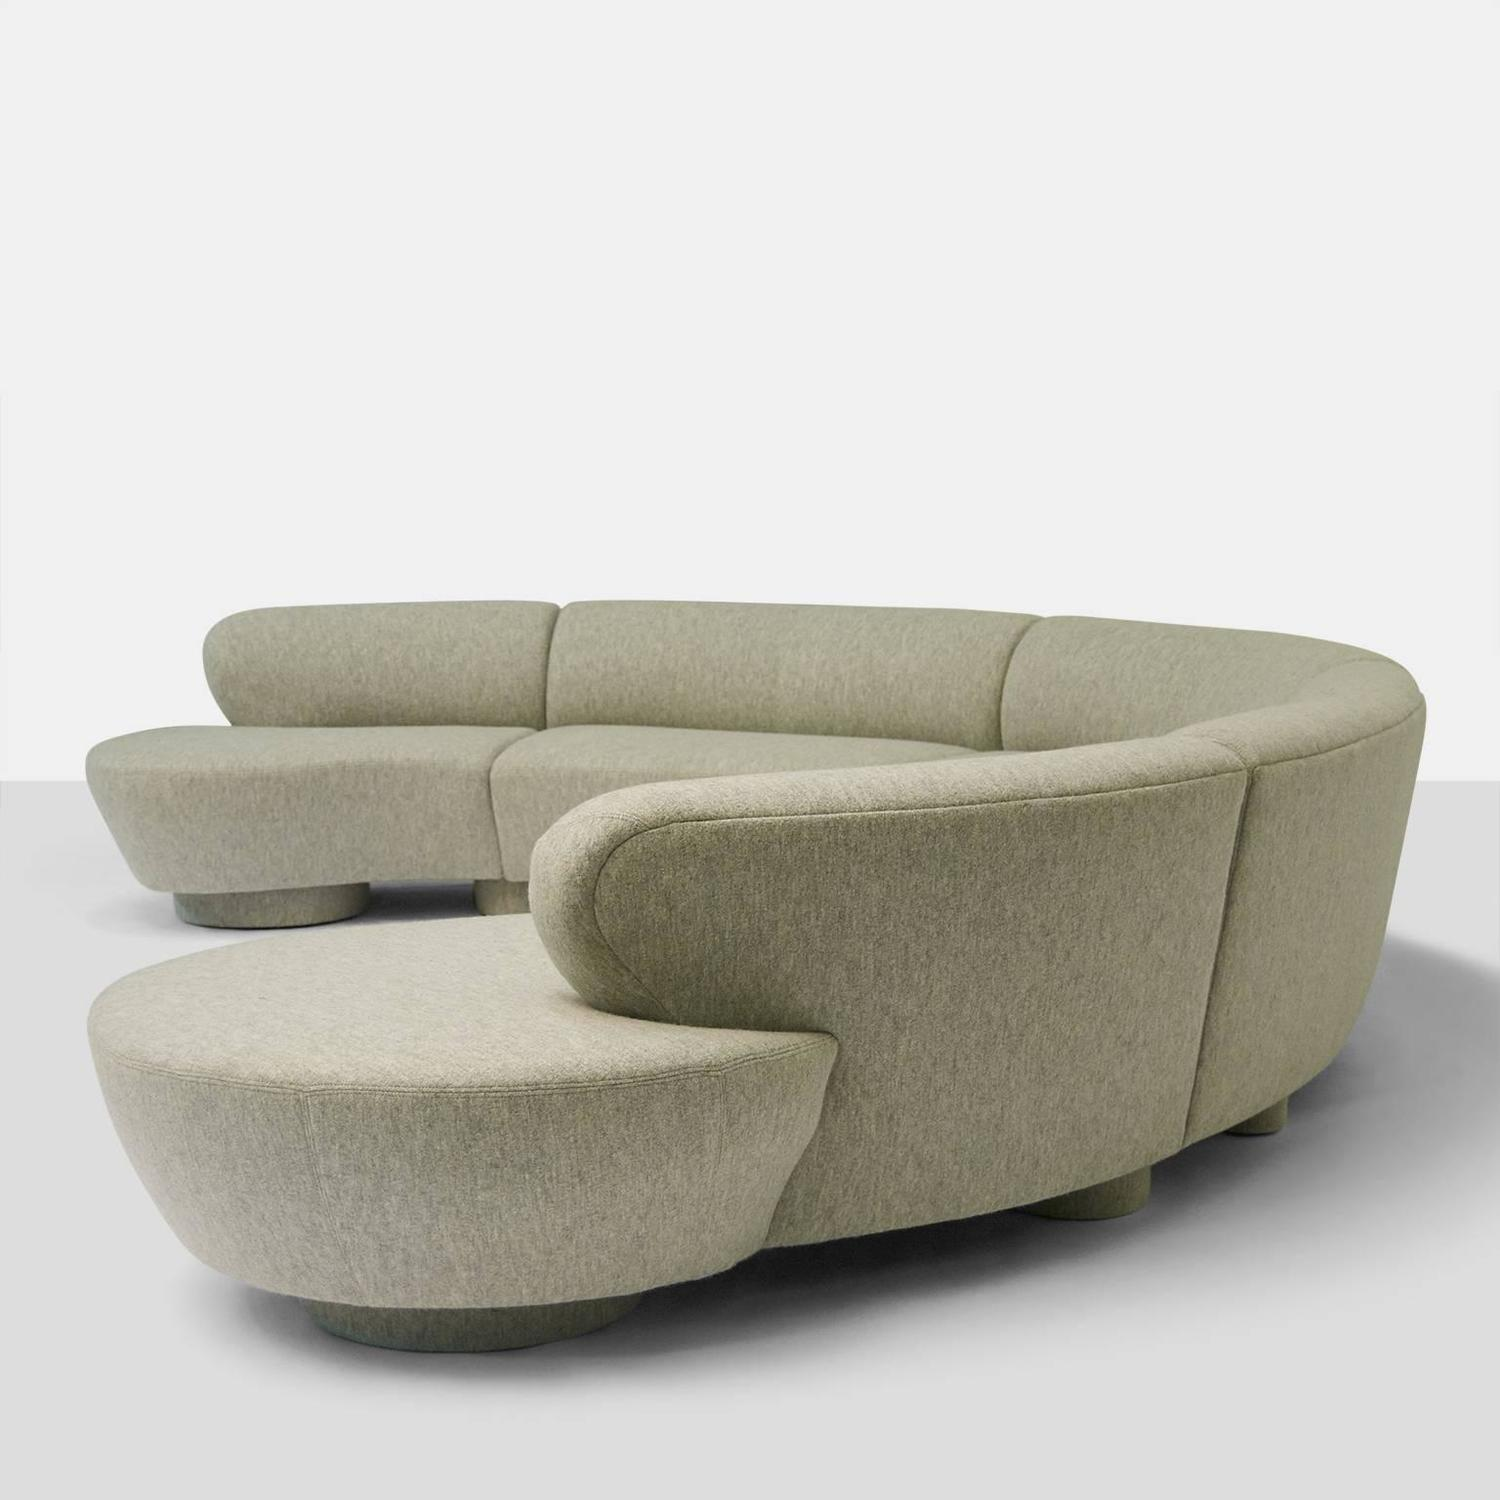 cloud sofa for sale wooden bed designs pictures vladimir kagan sectional at 1stdibs